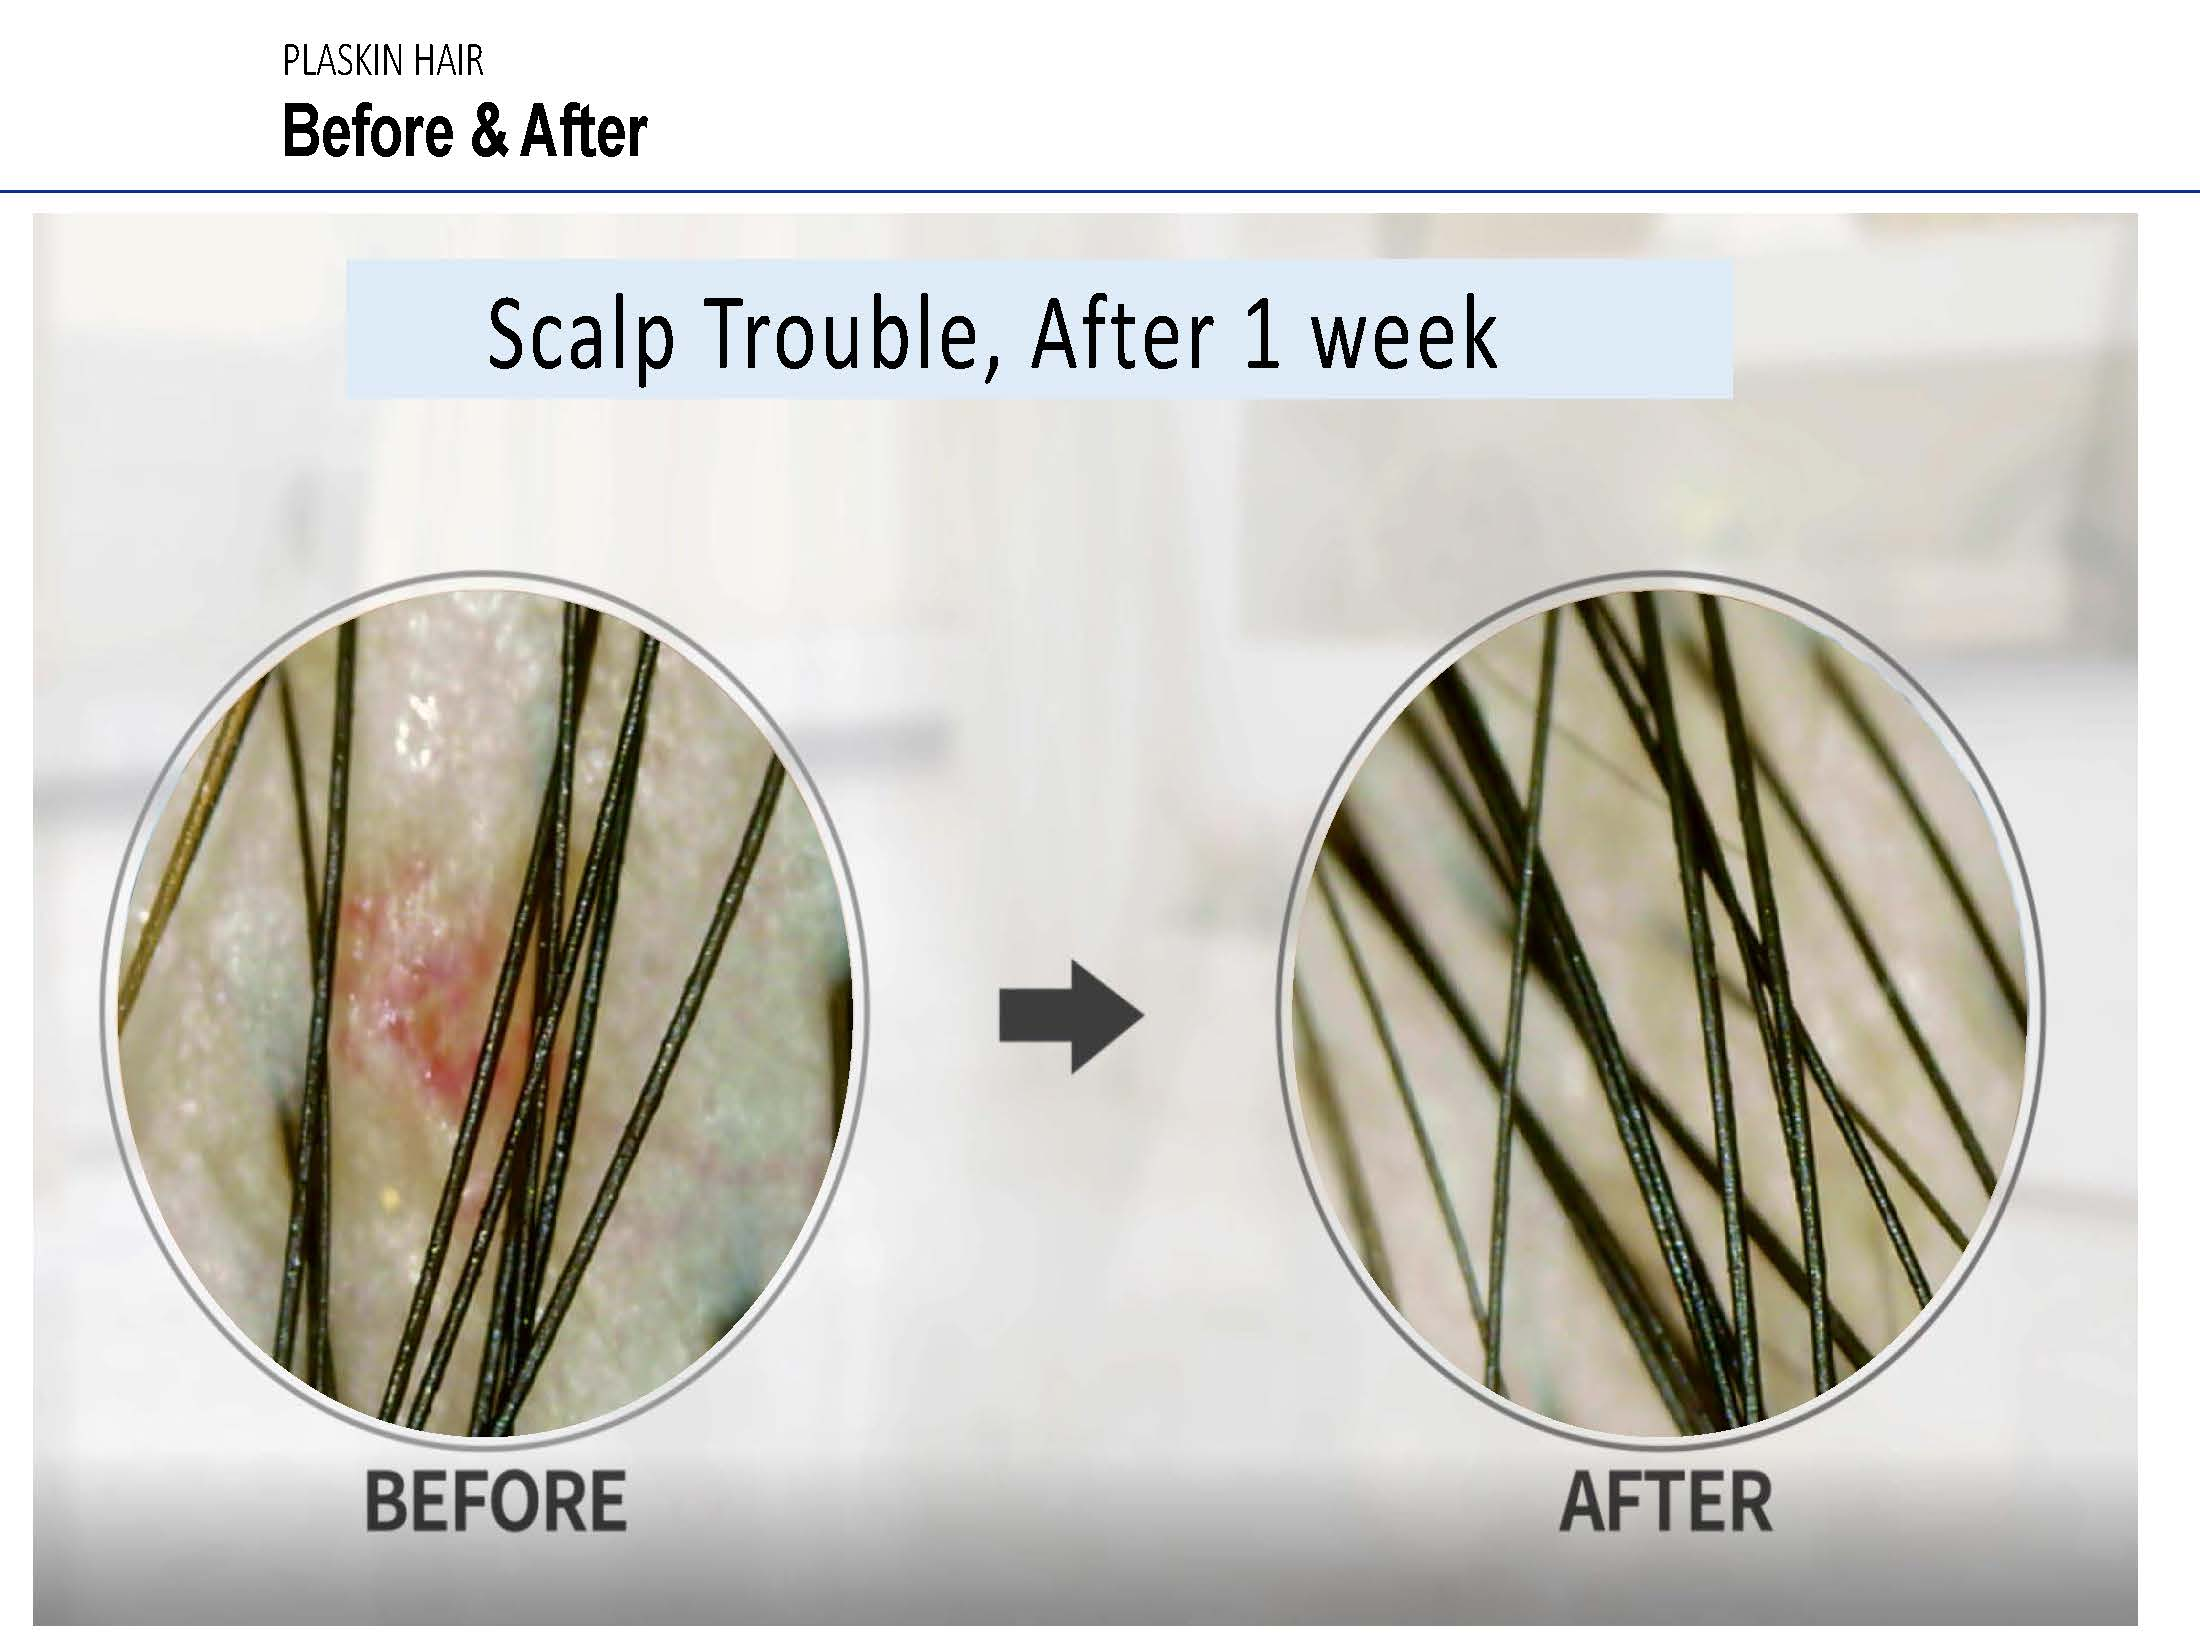 scalp trouble examples__Page_10.jpg